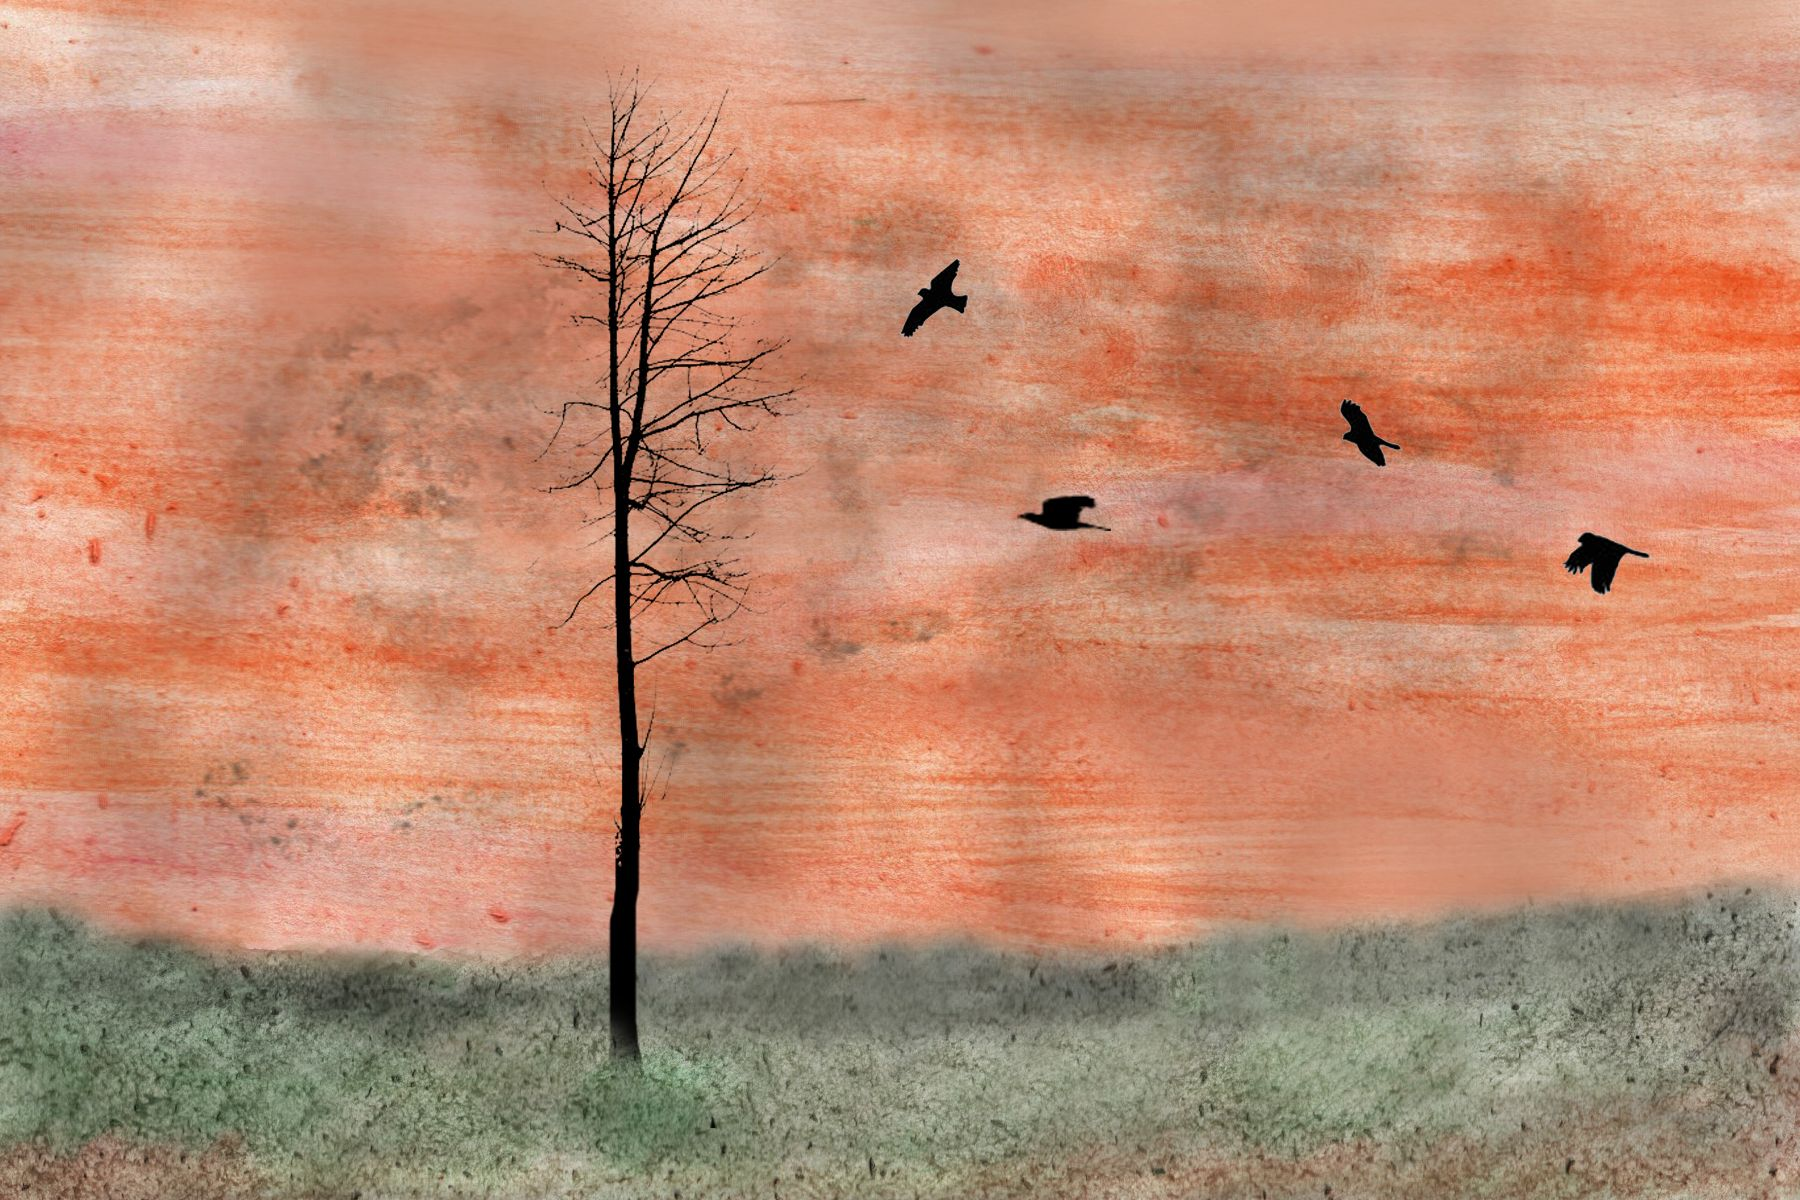 painted backgrounds with photographed silhouettes of trees and birds. Inspired by Jeff League